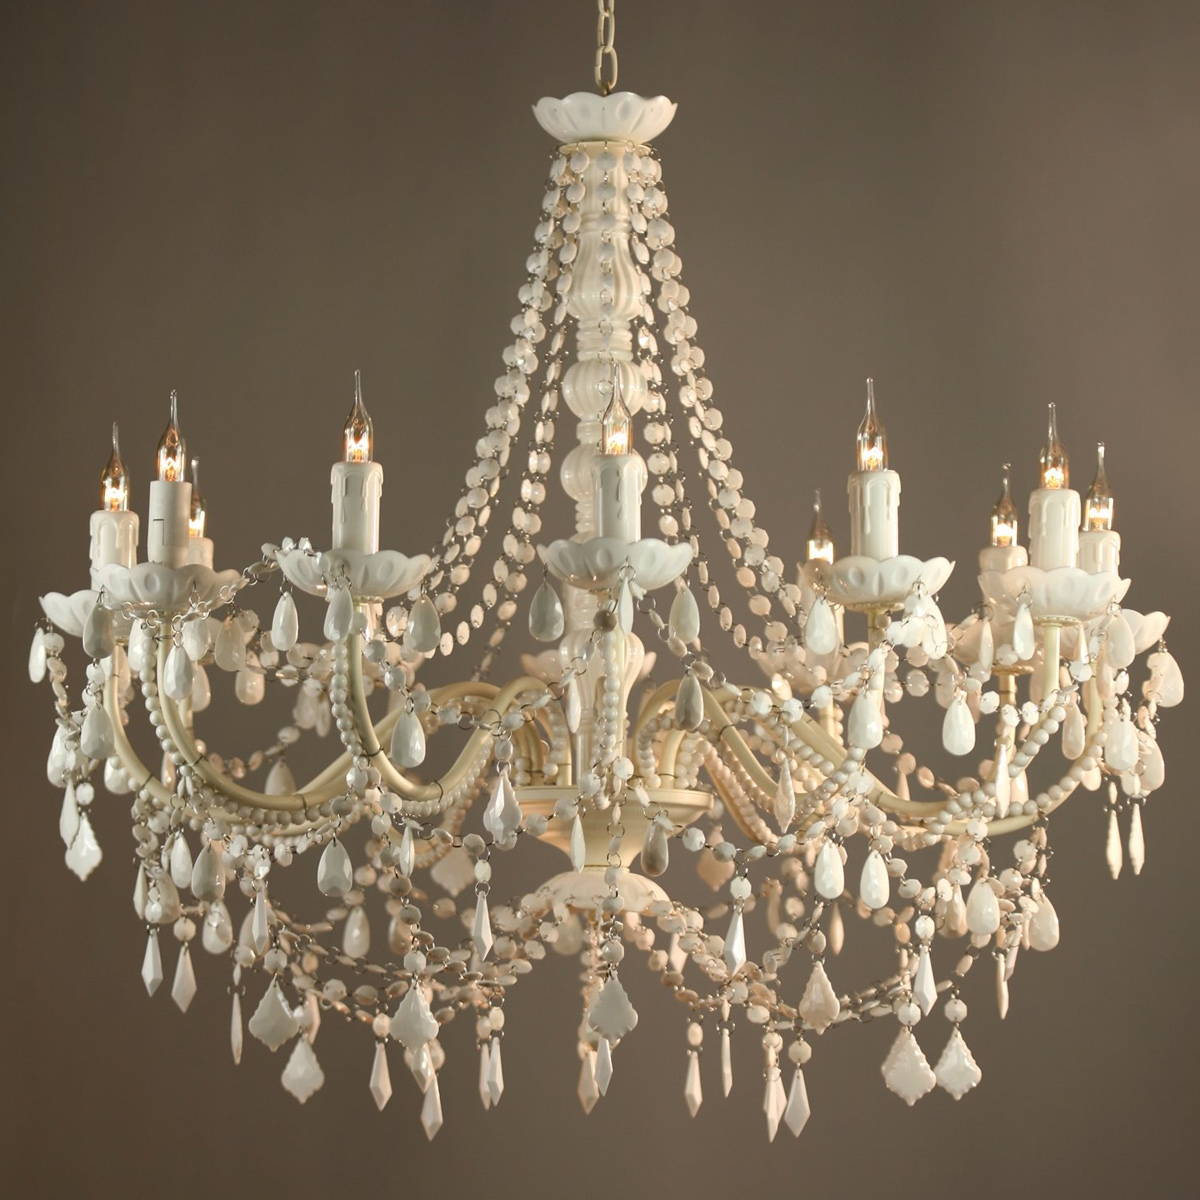 Antique White Chandelier With Vintage French Chandeliers (#3 of 12)